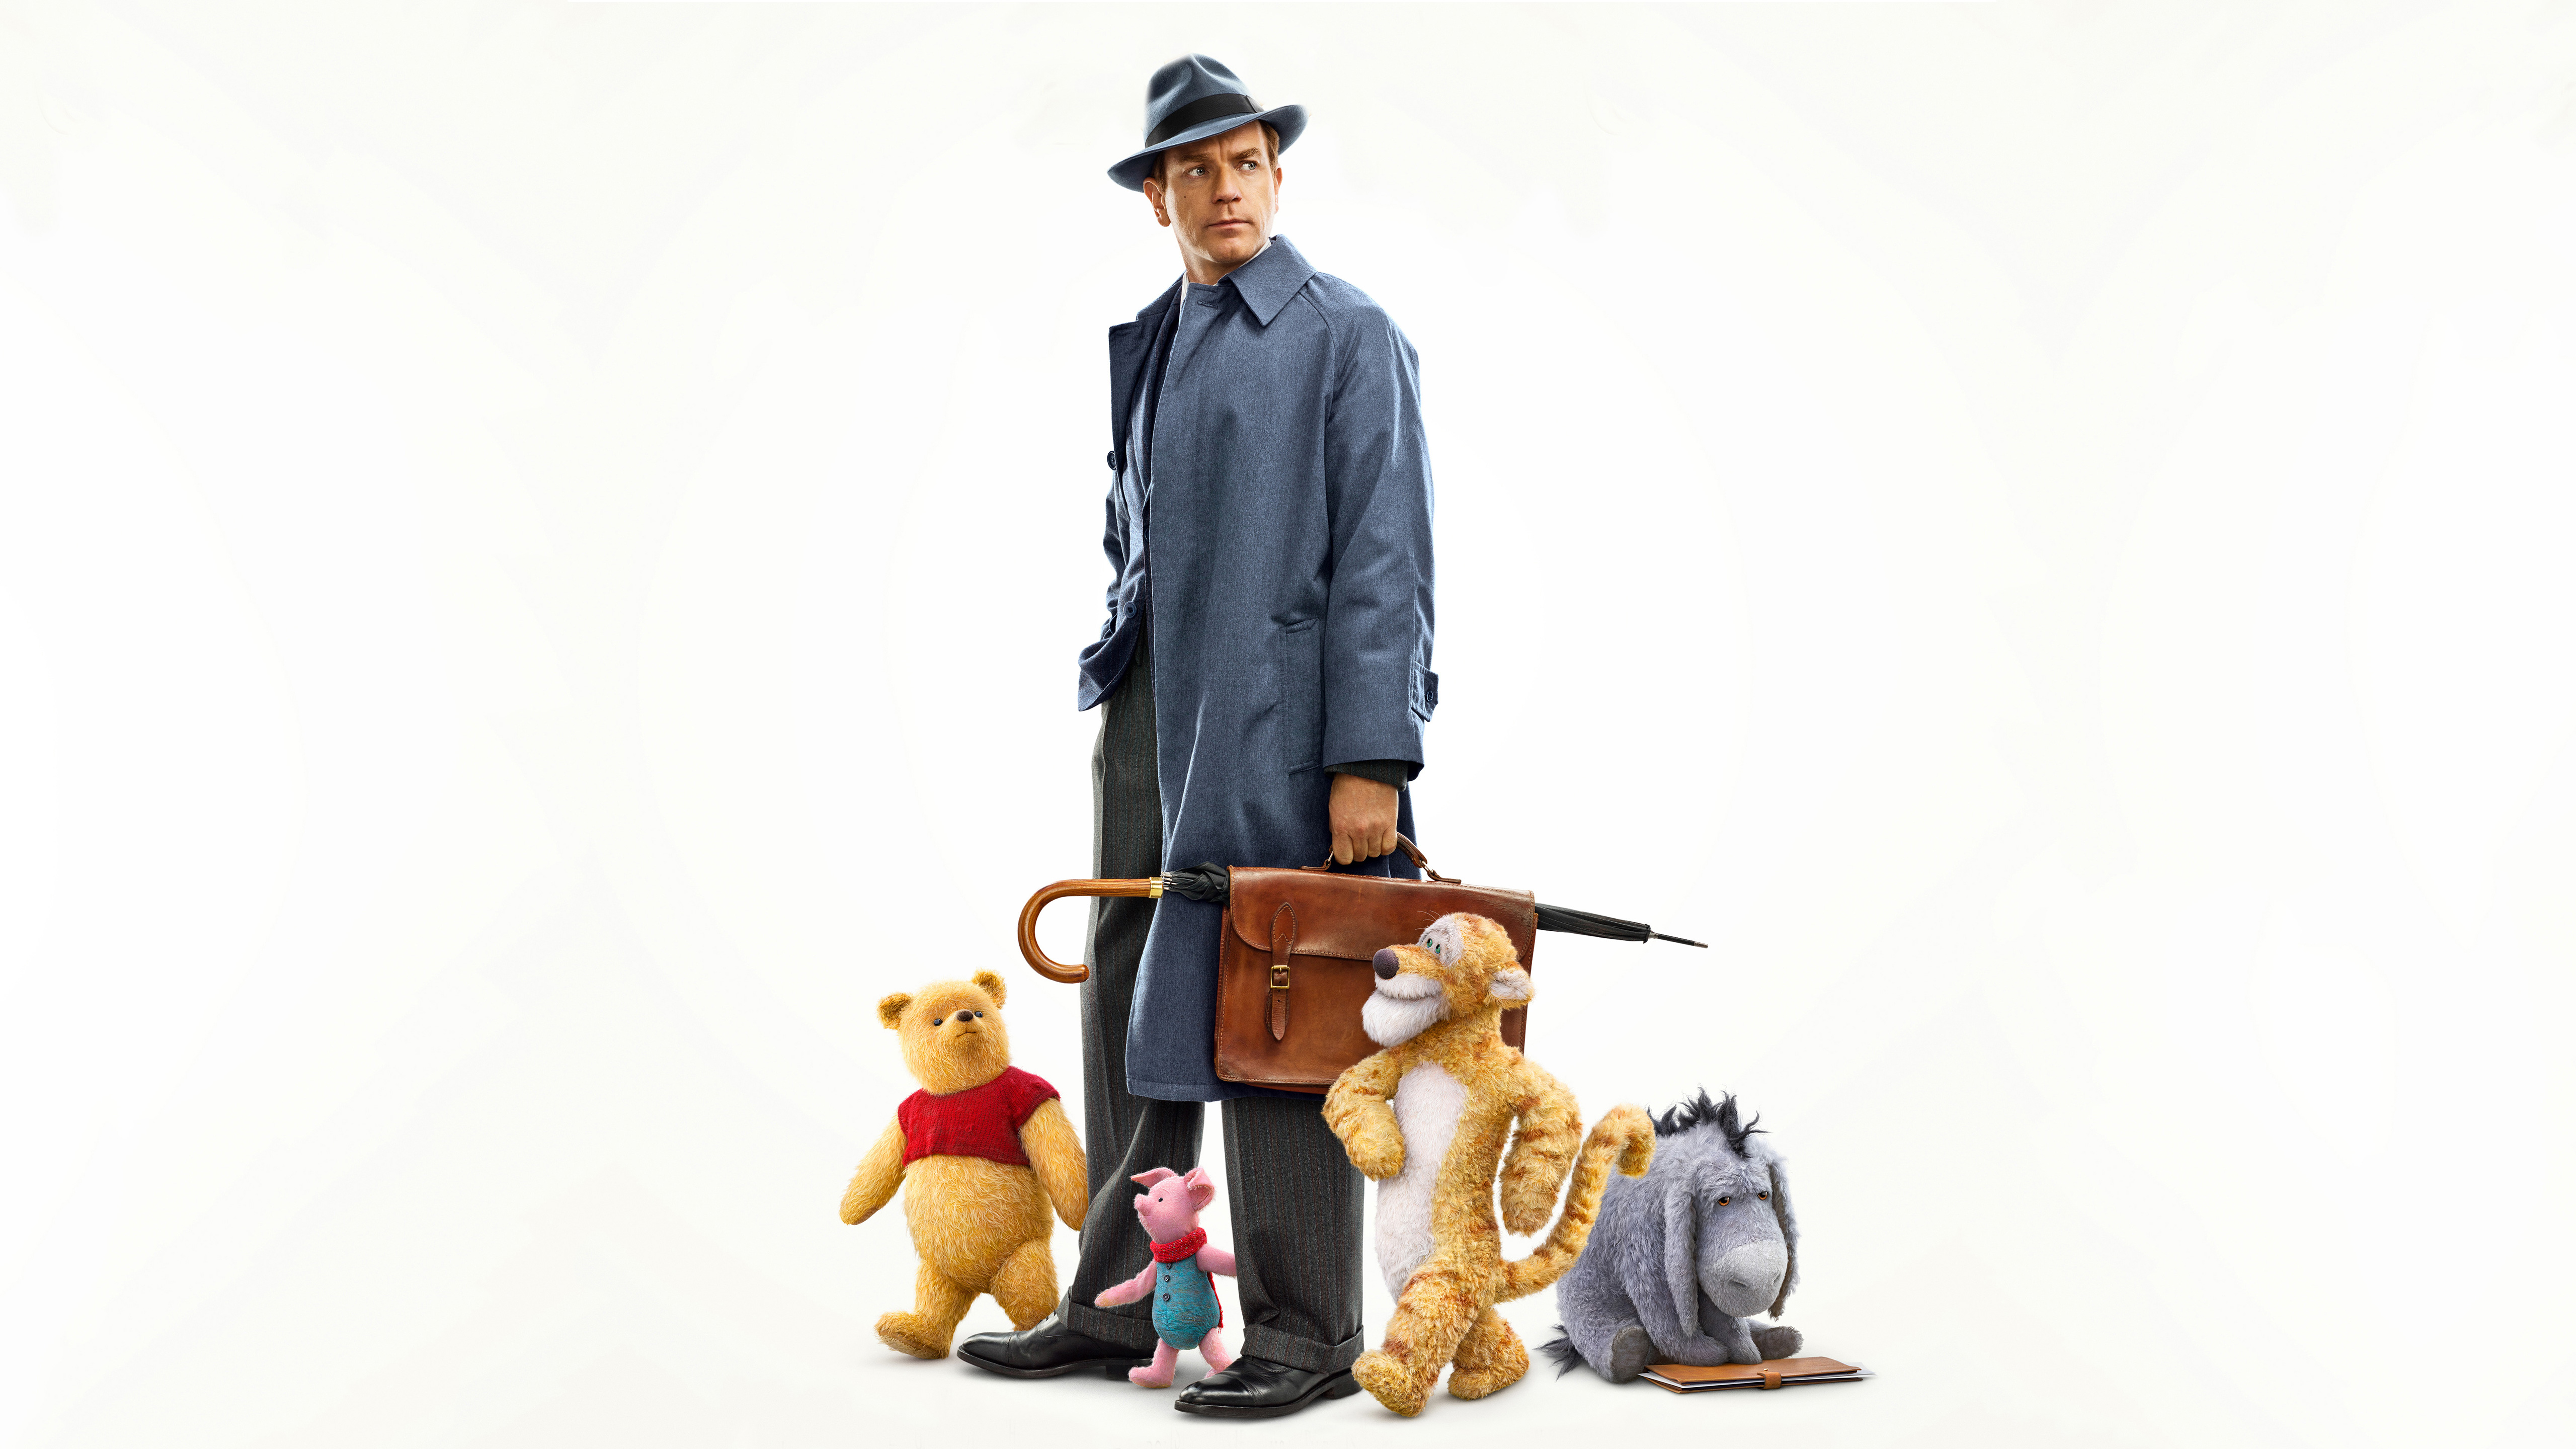 Mobile Flowers 3d Wallpapers Christopher Robin 2018 Movie 5k Hd Movies 4k Wallpapers